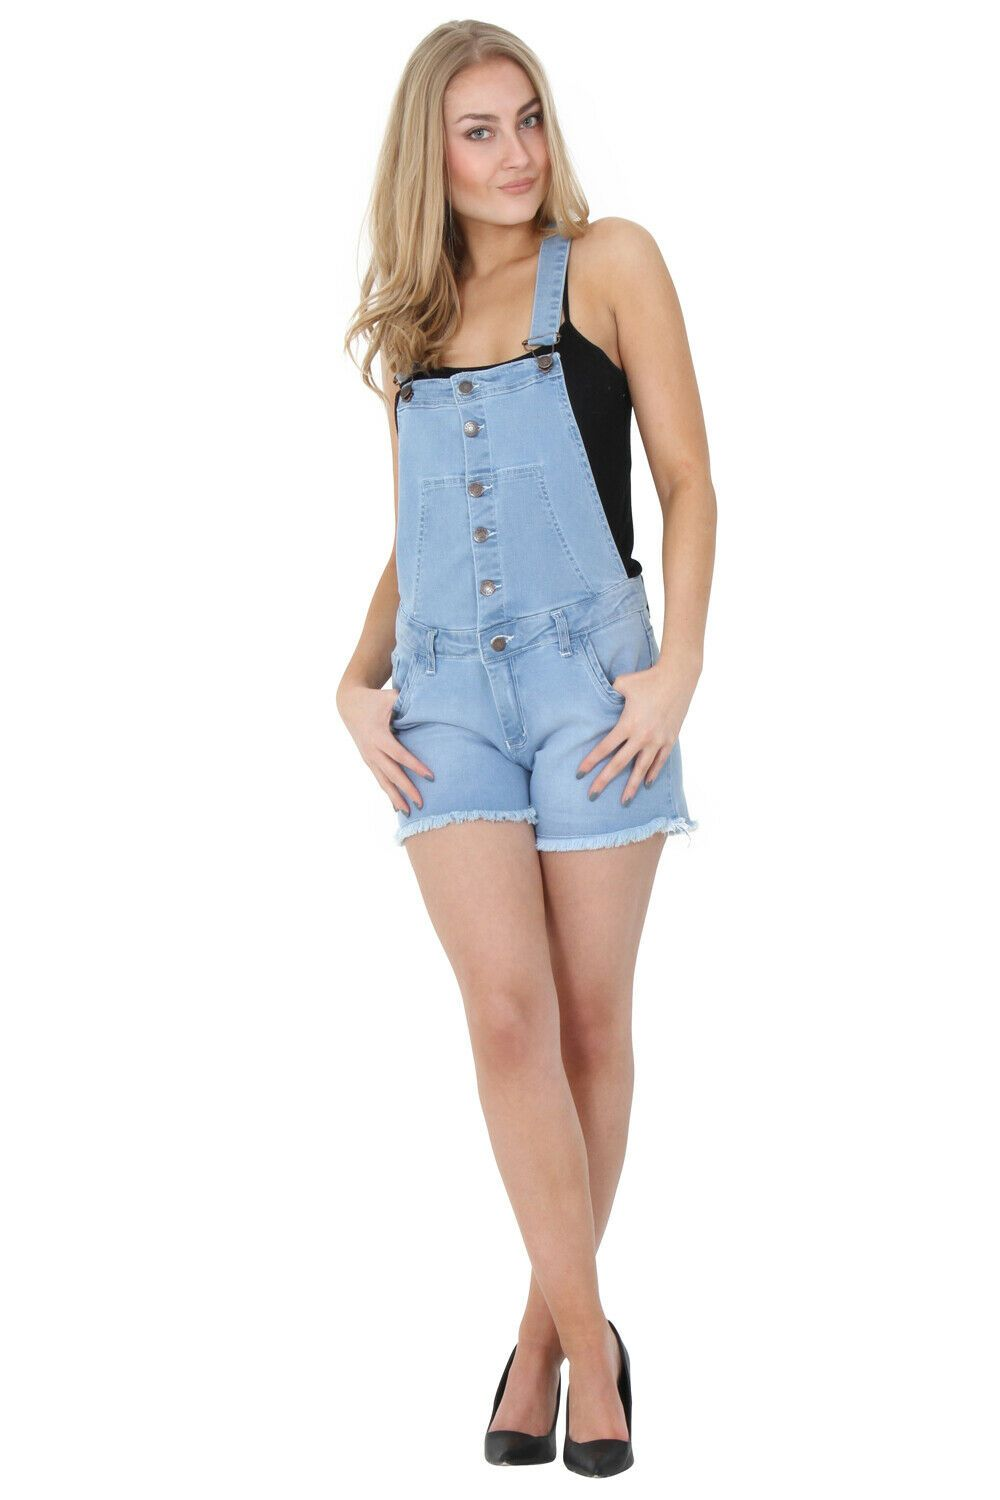 Full frontal of 'Holly' style soft, stretchy mid-weight denim bib-overall shorts from Dungarees Online.